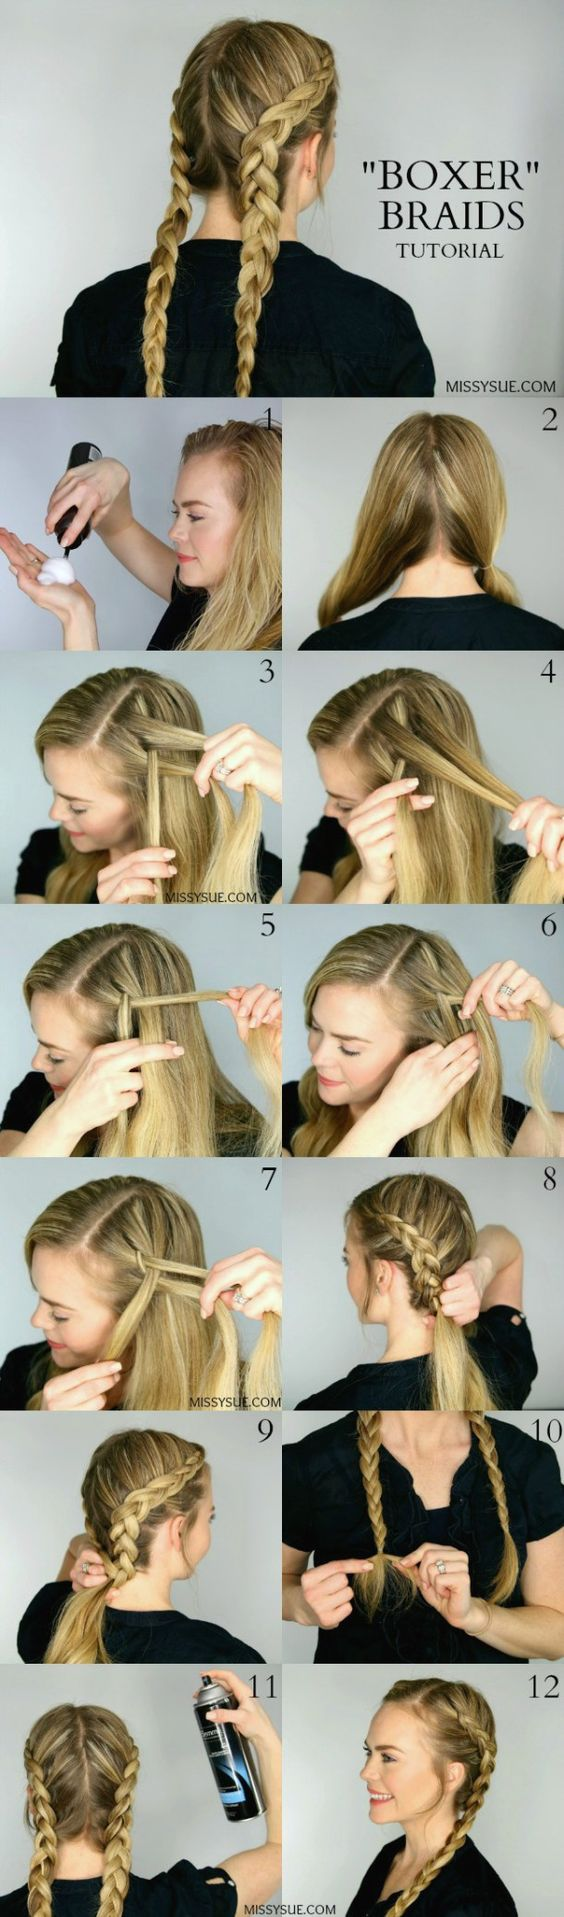 Double braid over